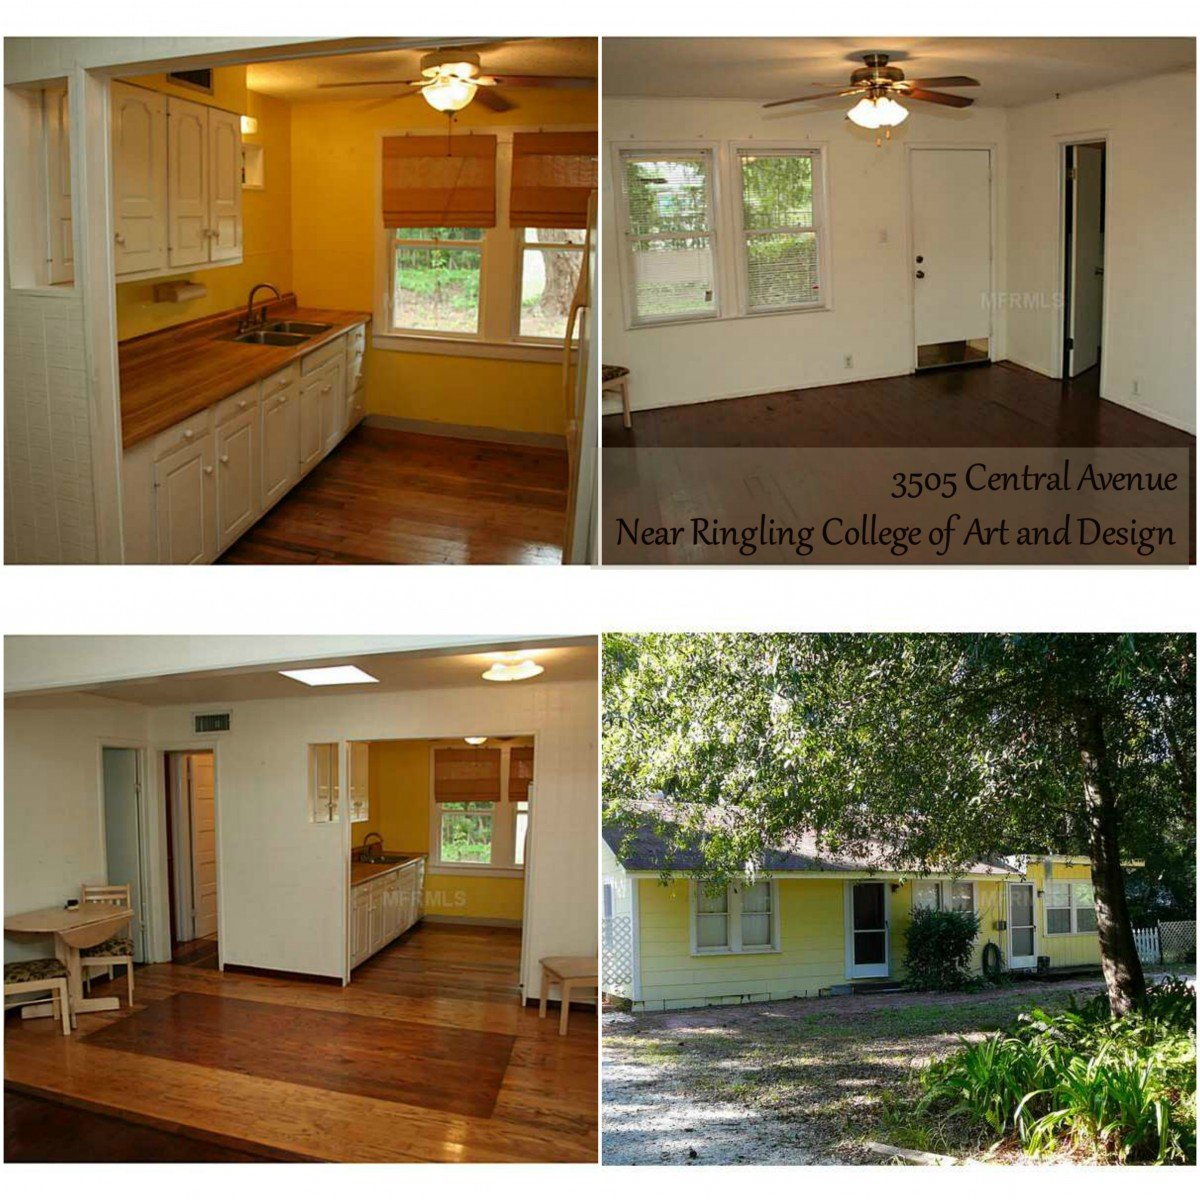 Single Family Home near Ringling College